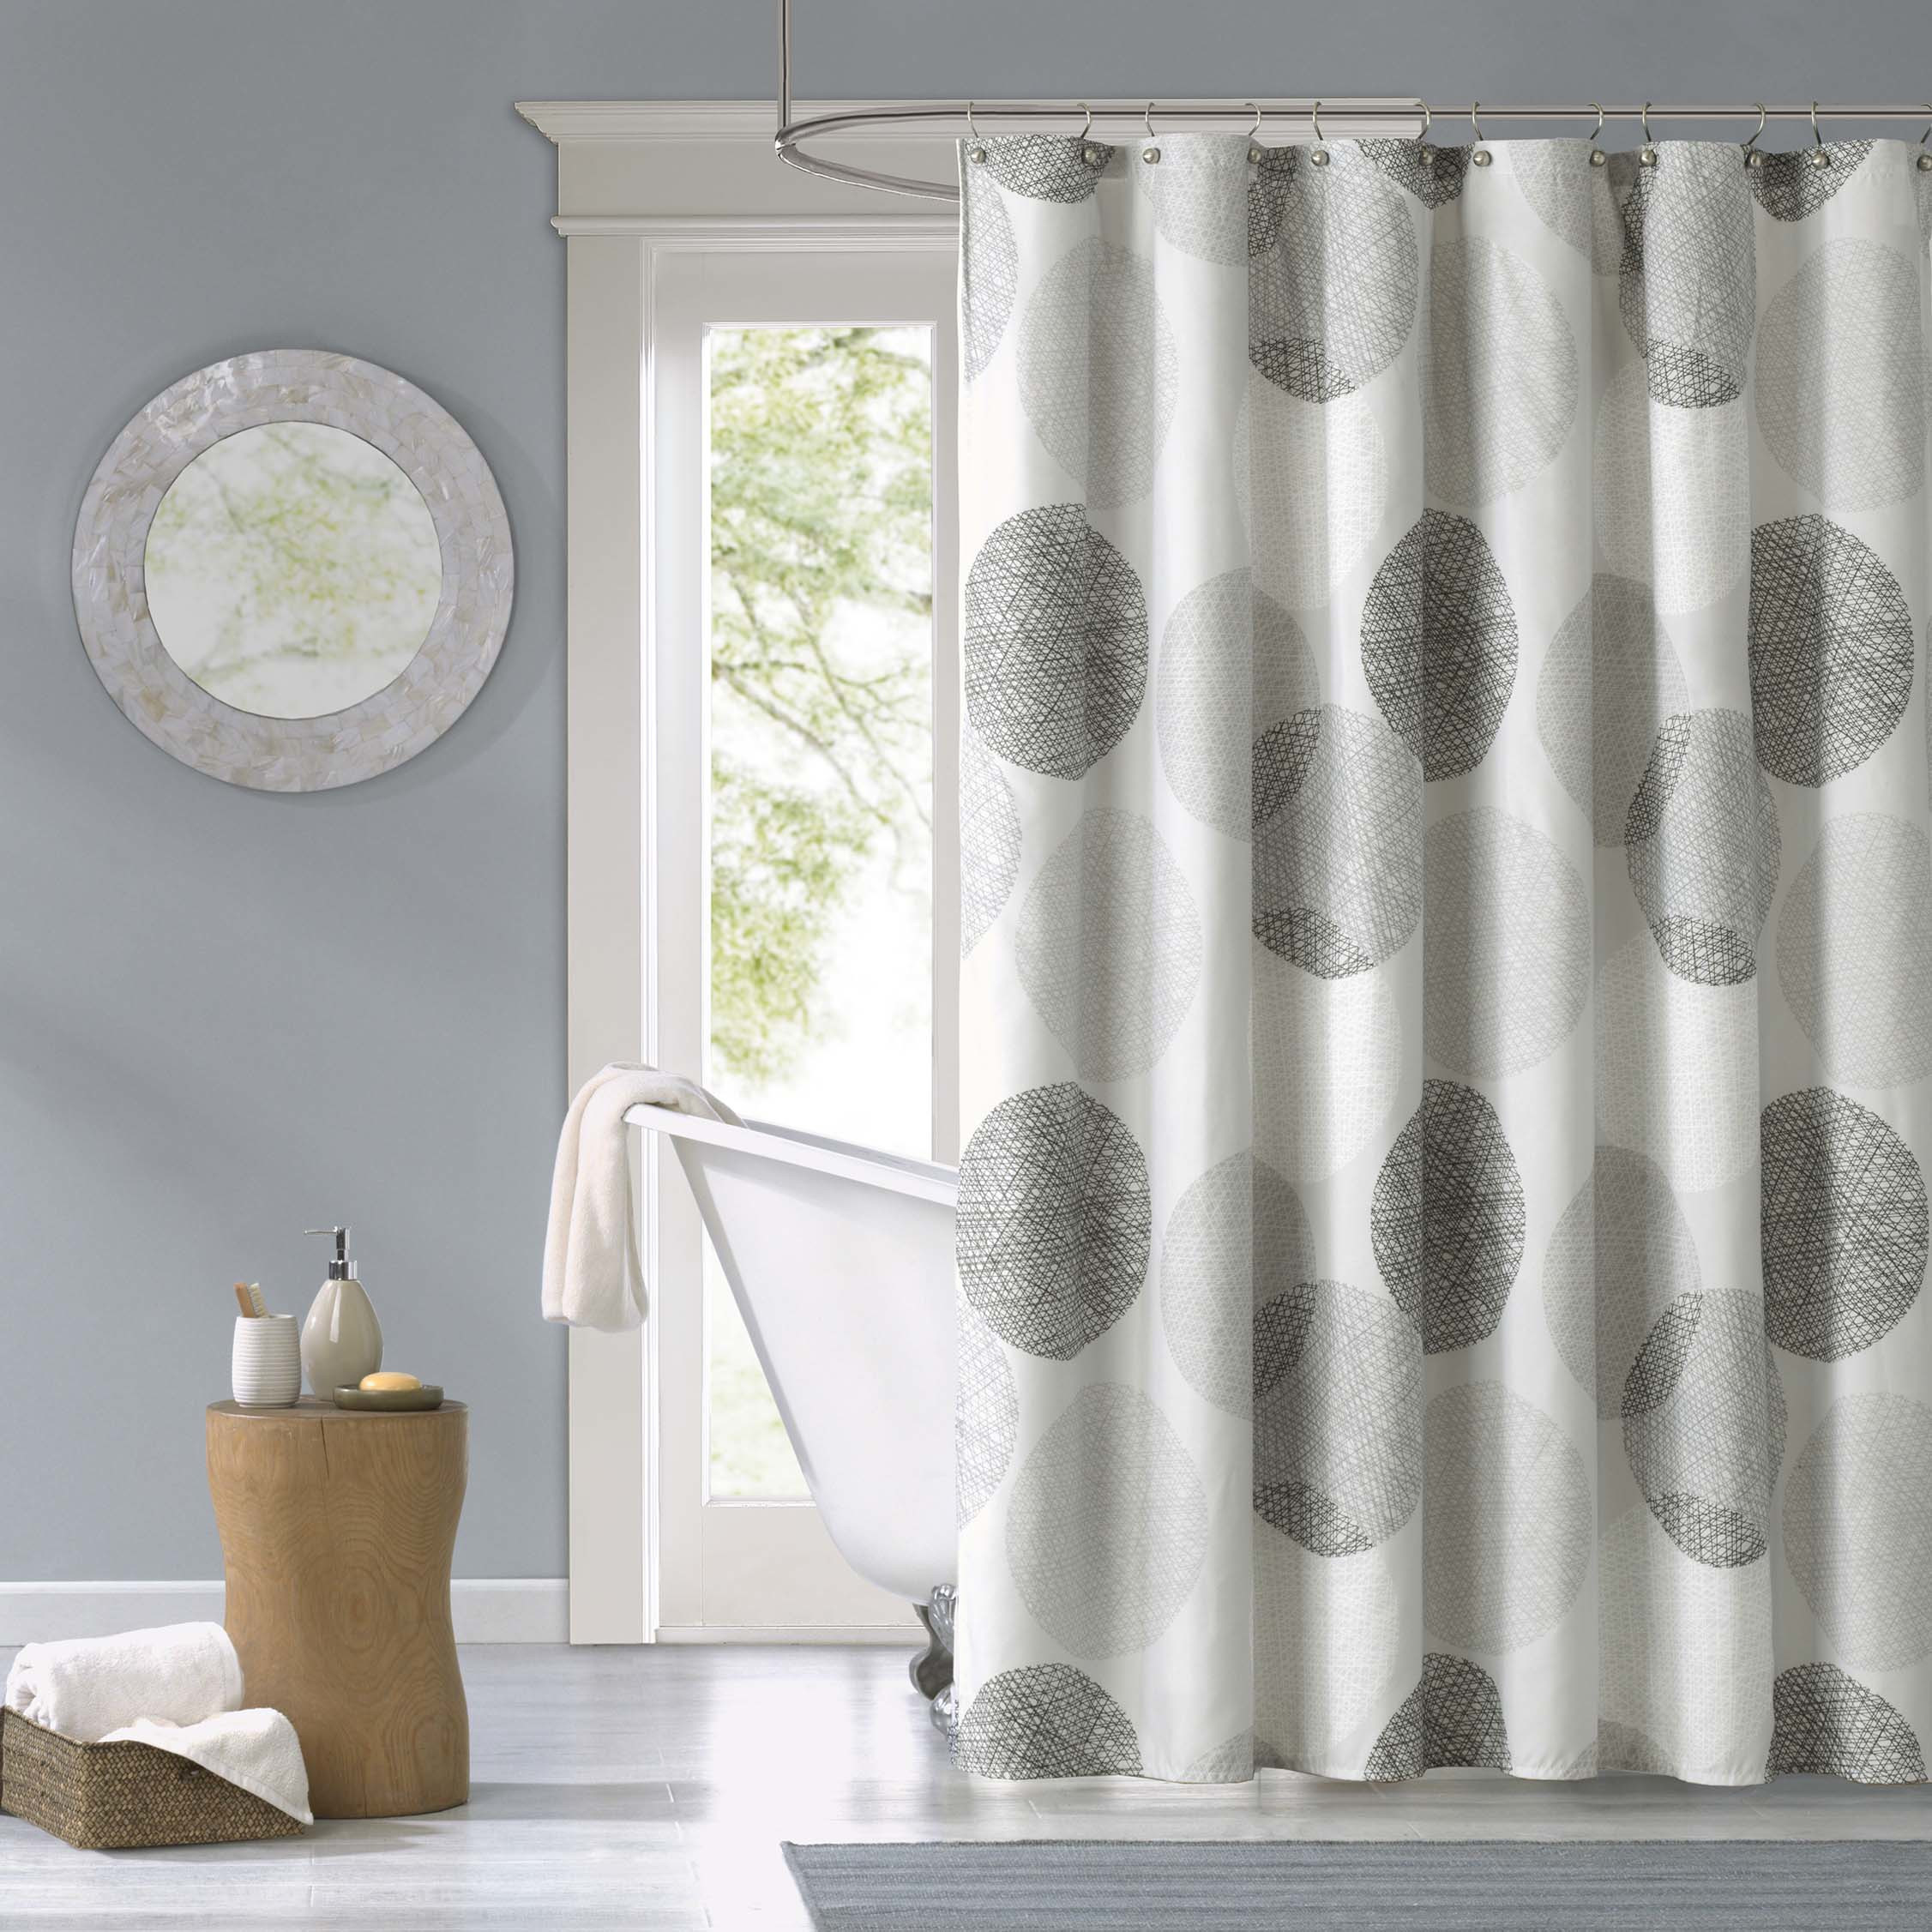 designs img curtains cool coolest shower curtain really unusual